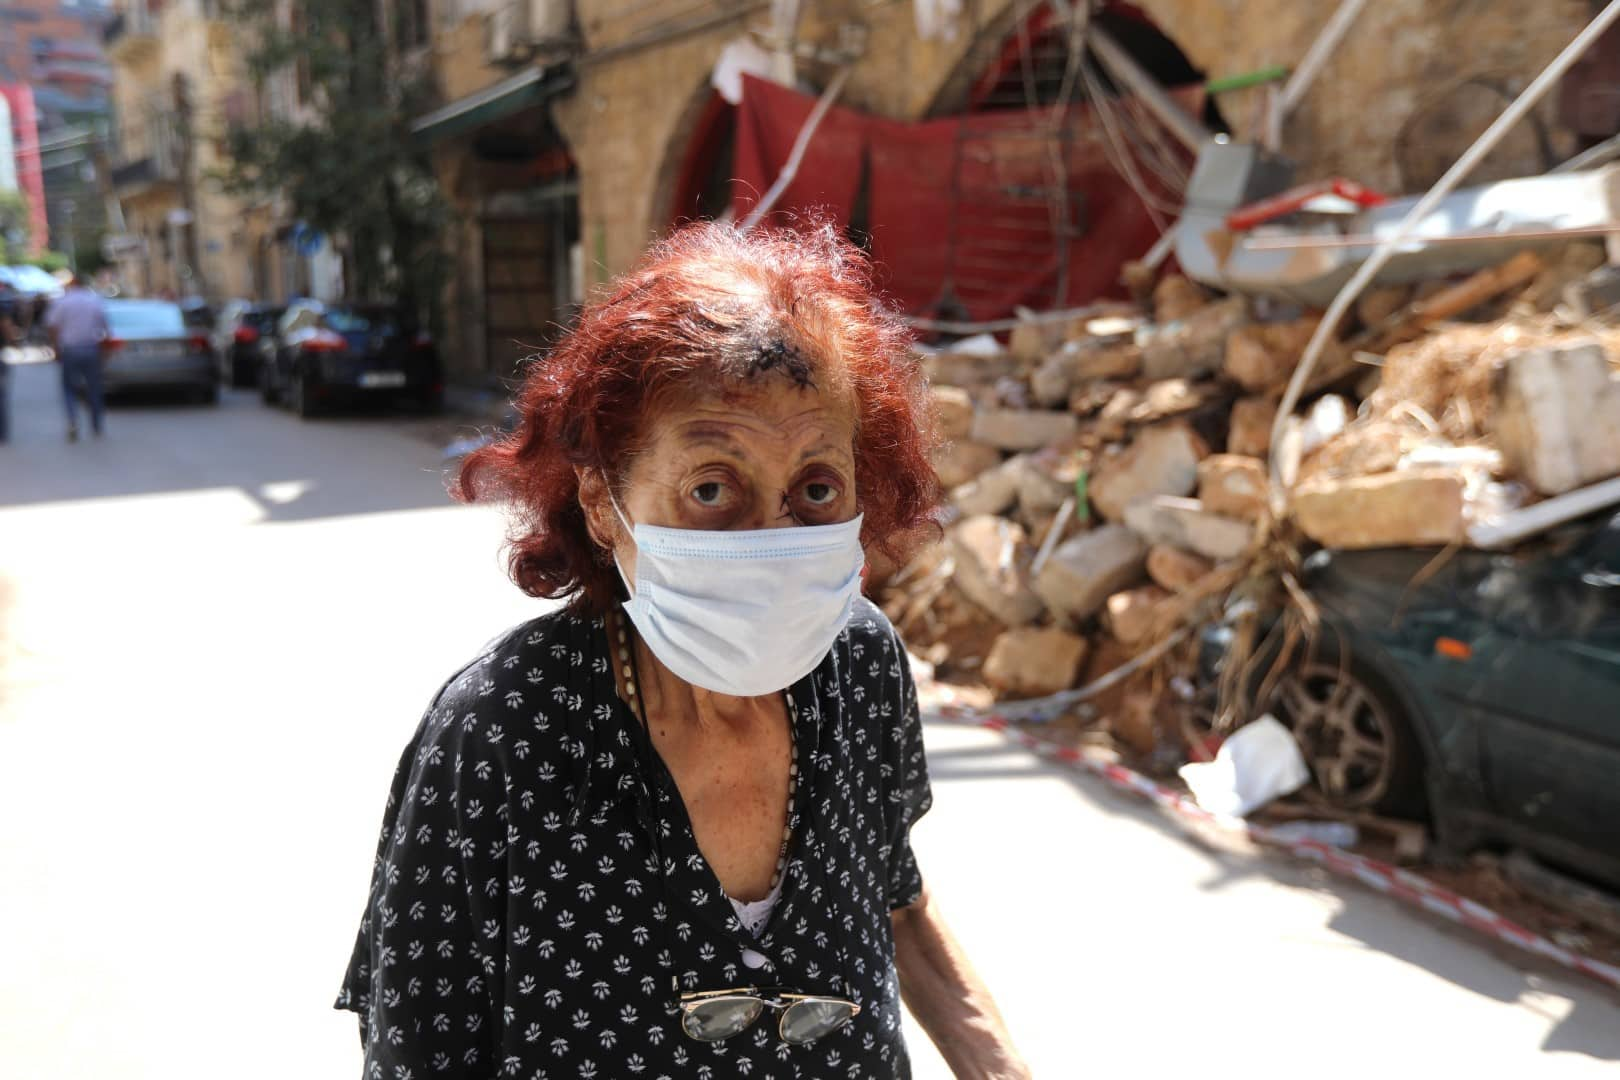 A woman, who says she was injured following Tuesday's blast, walks past damage along a street in Beirut, Lebanon, August 10, 2020. REUTERS/Mohamed Azakir - RC21BI9WNNU8